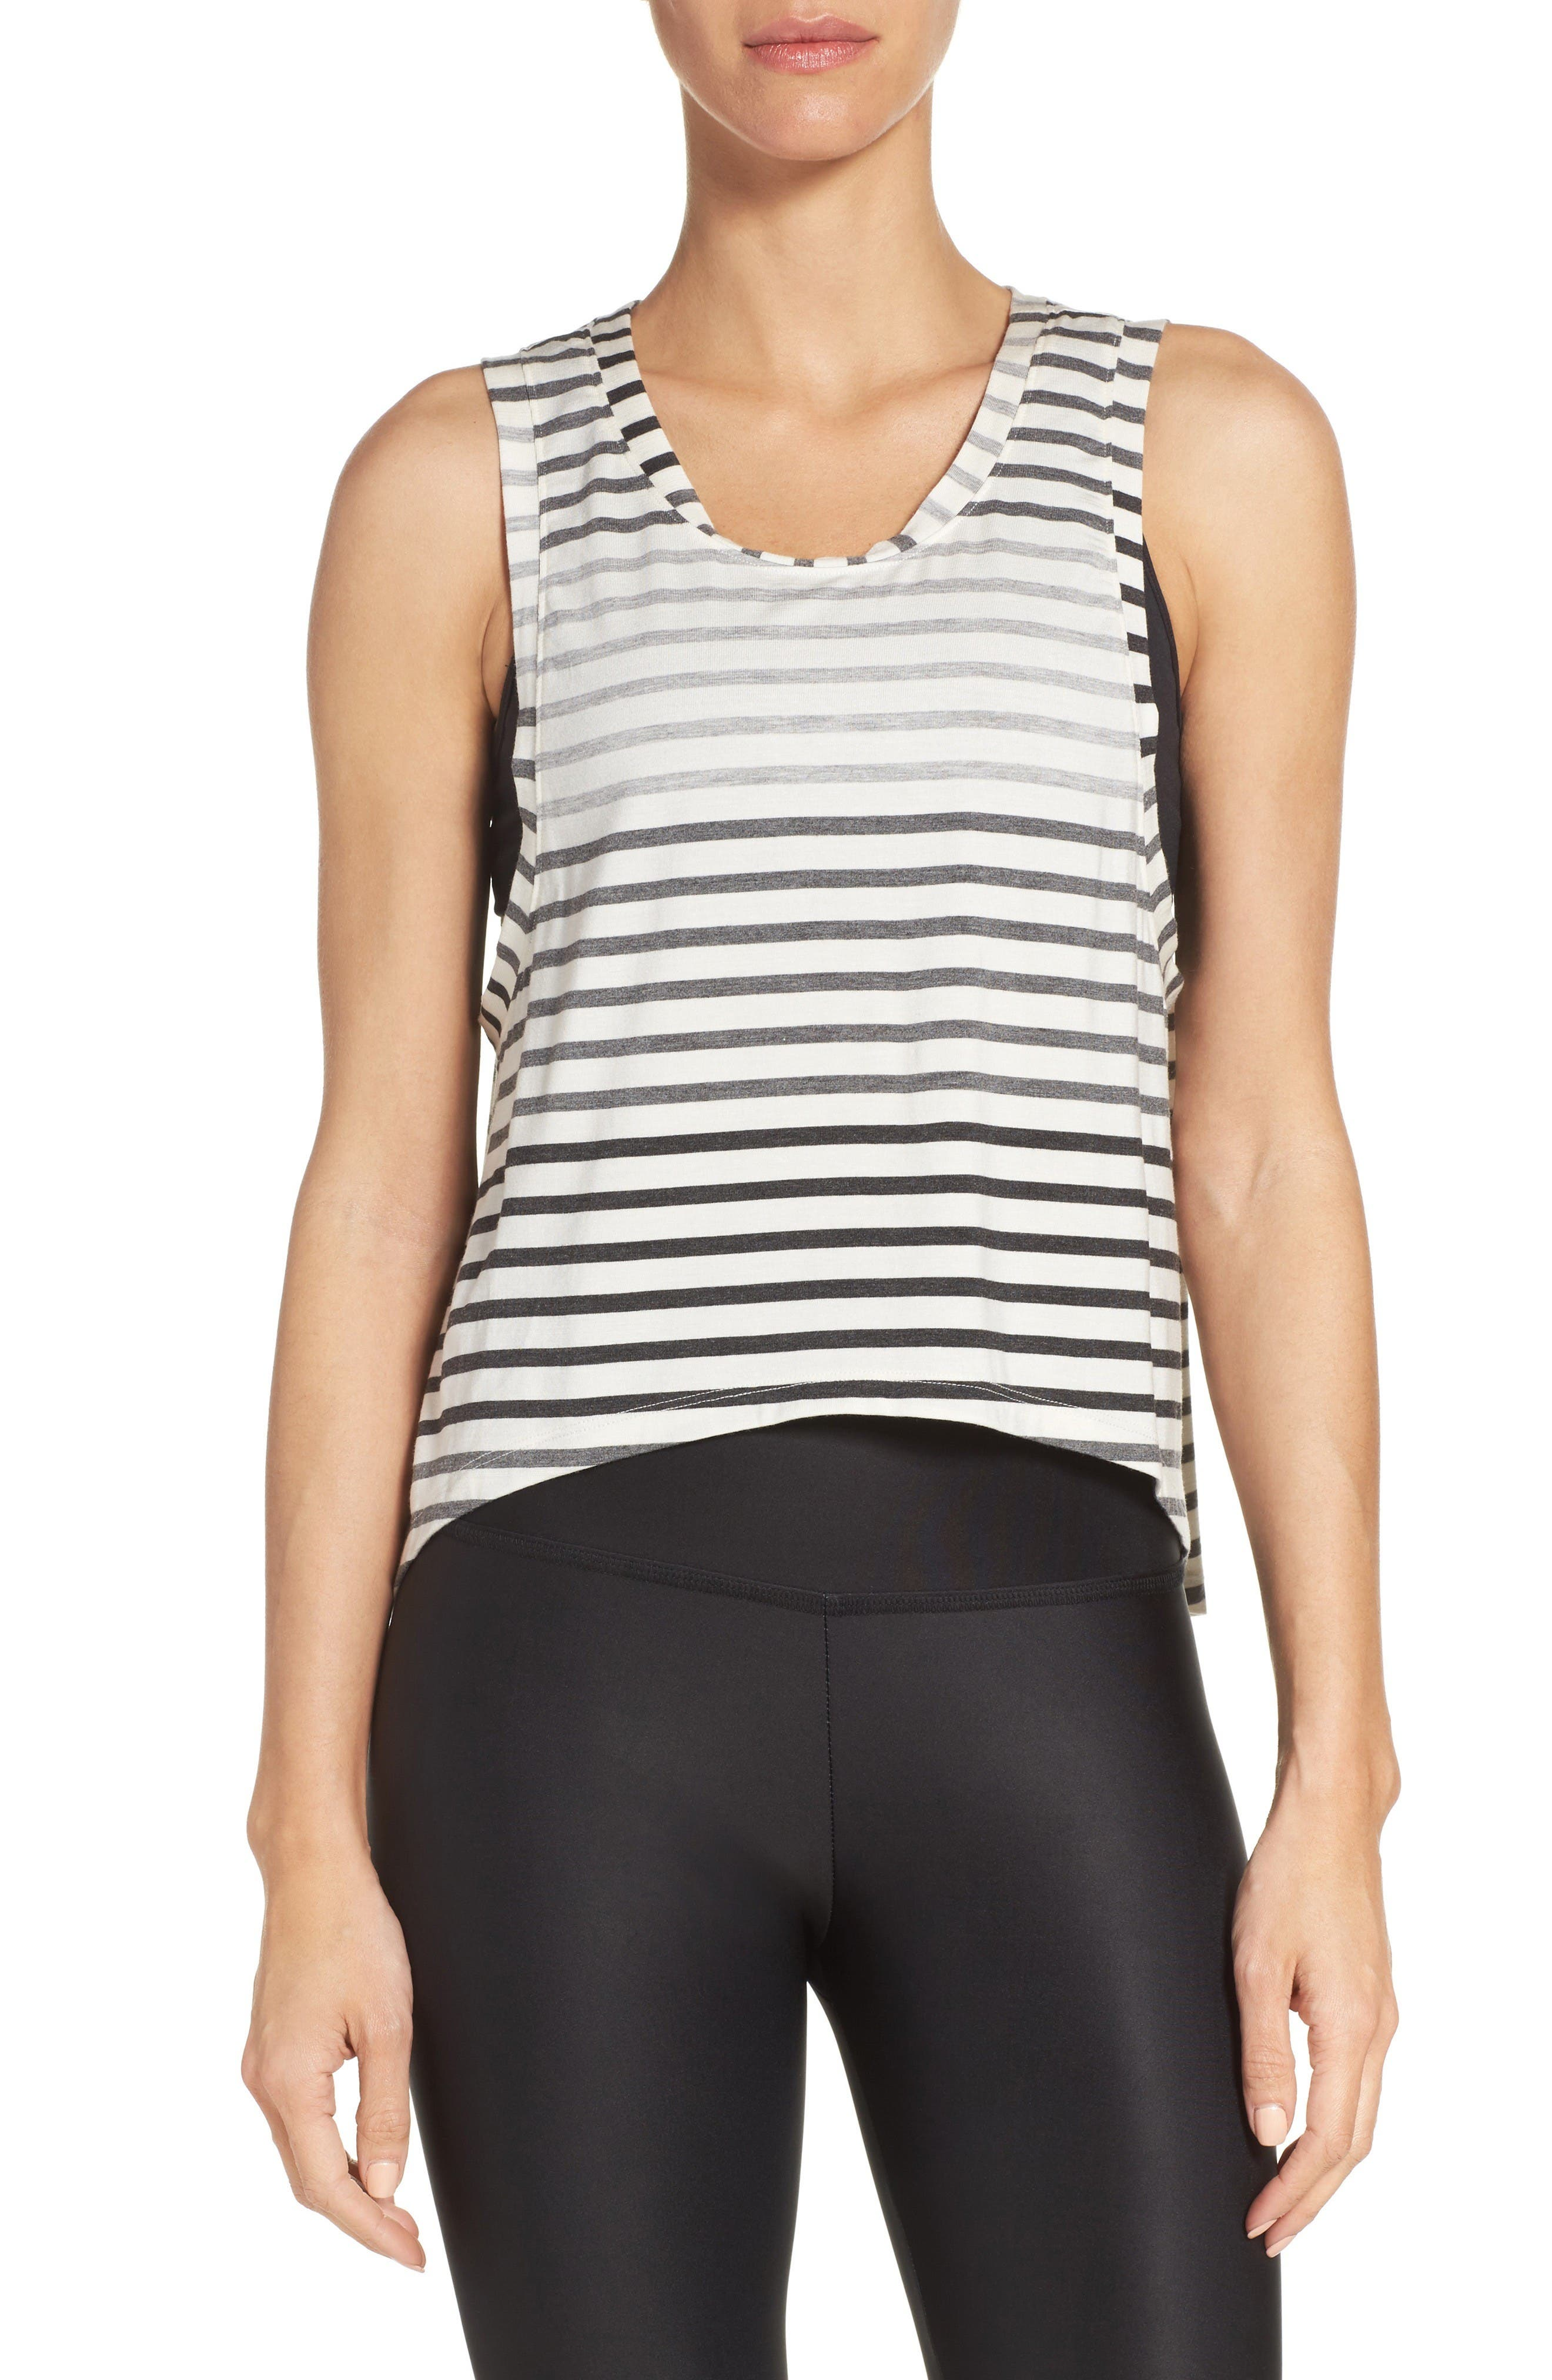 Bring It Ombré Muscle Tee,                         Main,                         color, Gray Ombre Stripe